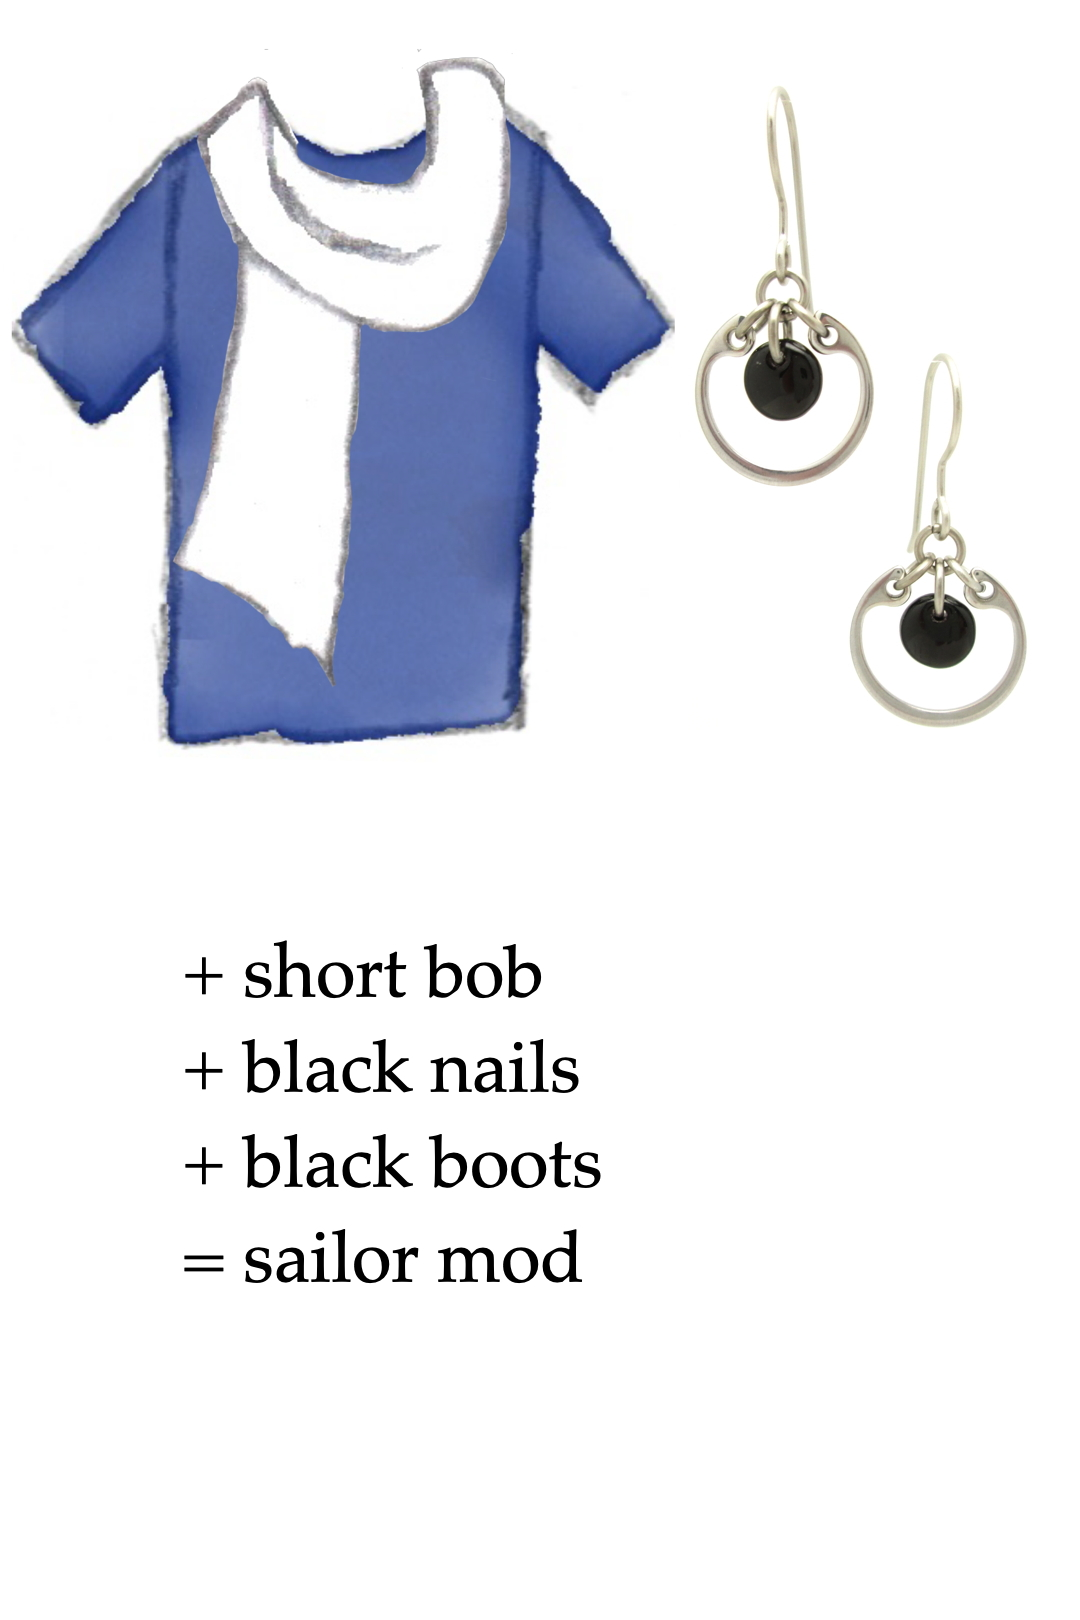 style sketch of a blue tee + white scarf with black modern circle earrings by wraptillion; text on image reads + short bob + black nails + black boots = sailor mod